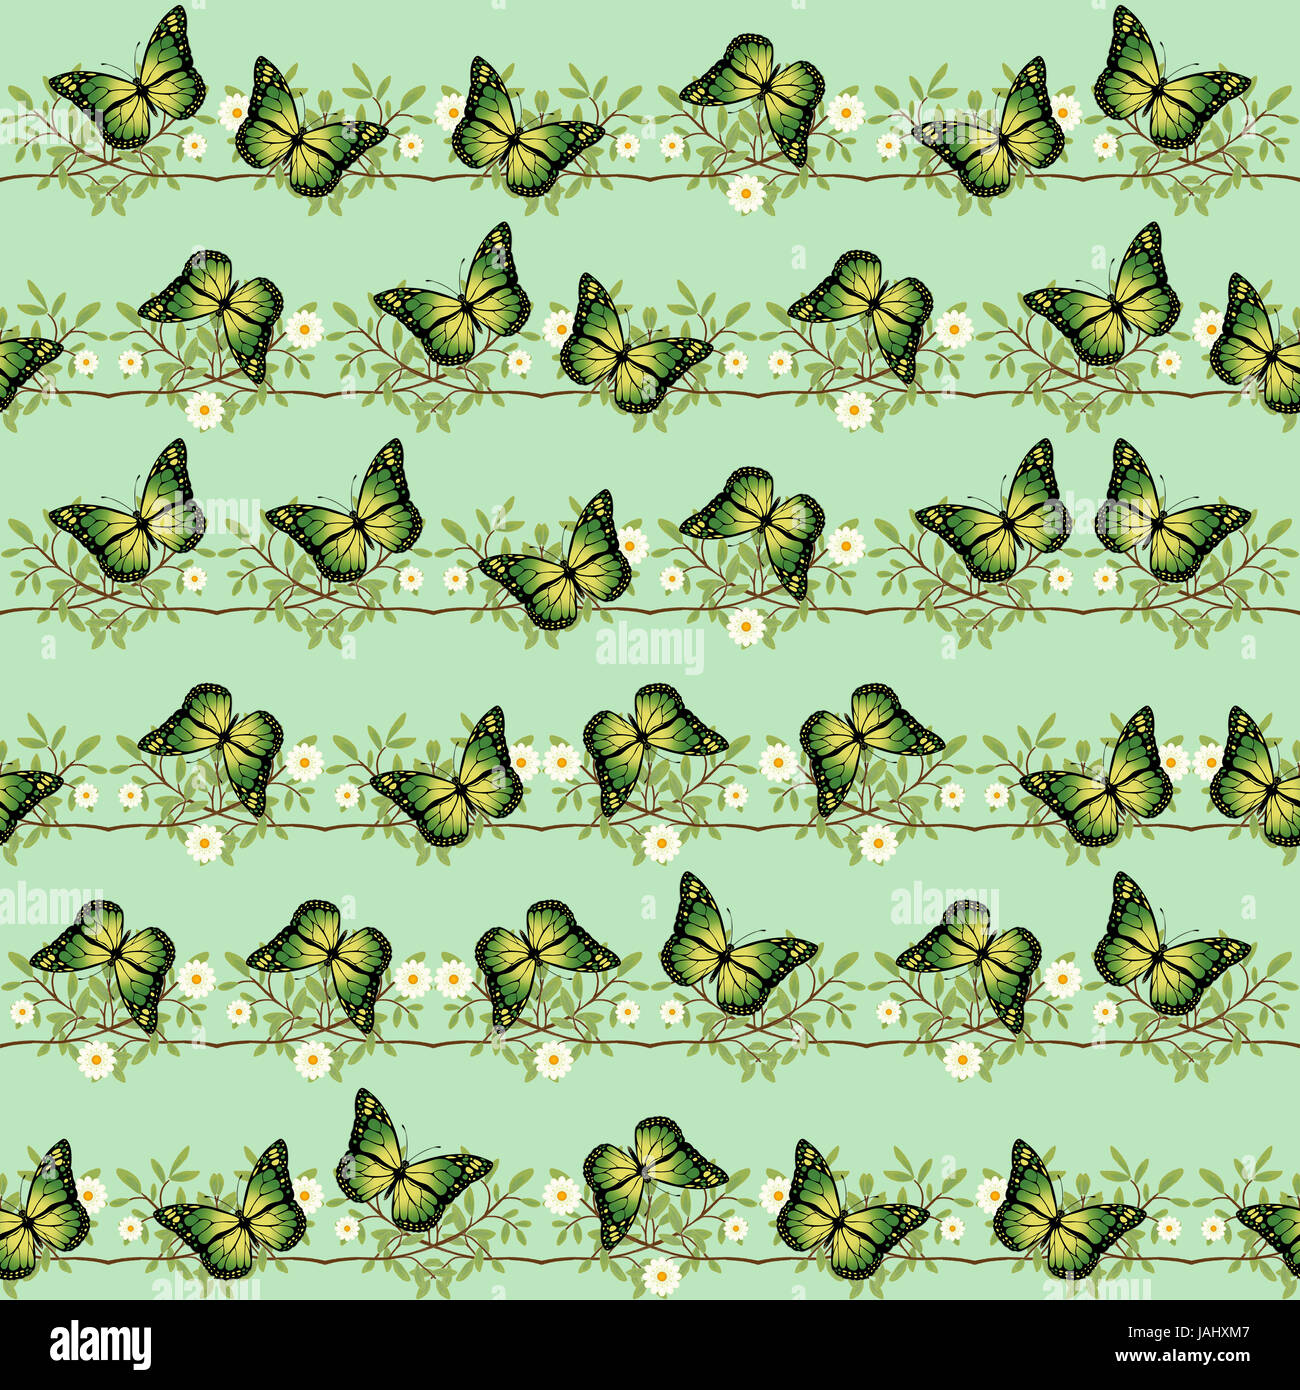 Nature pattern with green butterflies, twigs and daisies on a light green background. Digital art. - Stock Image